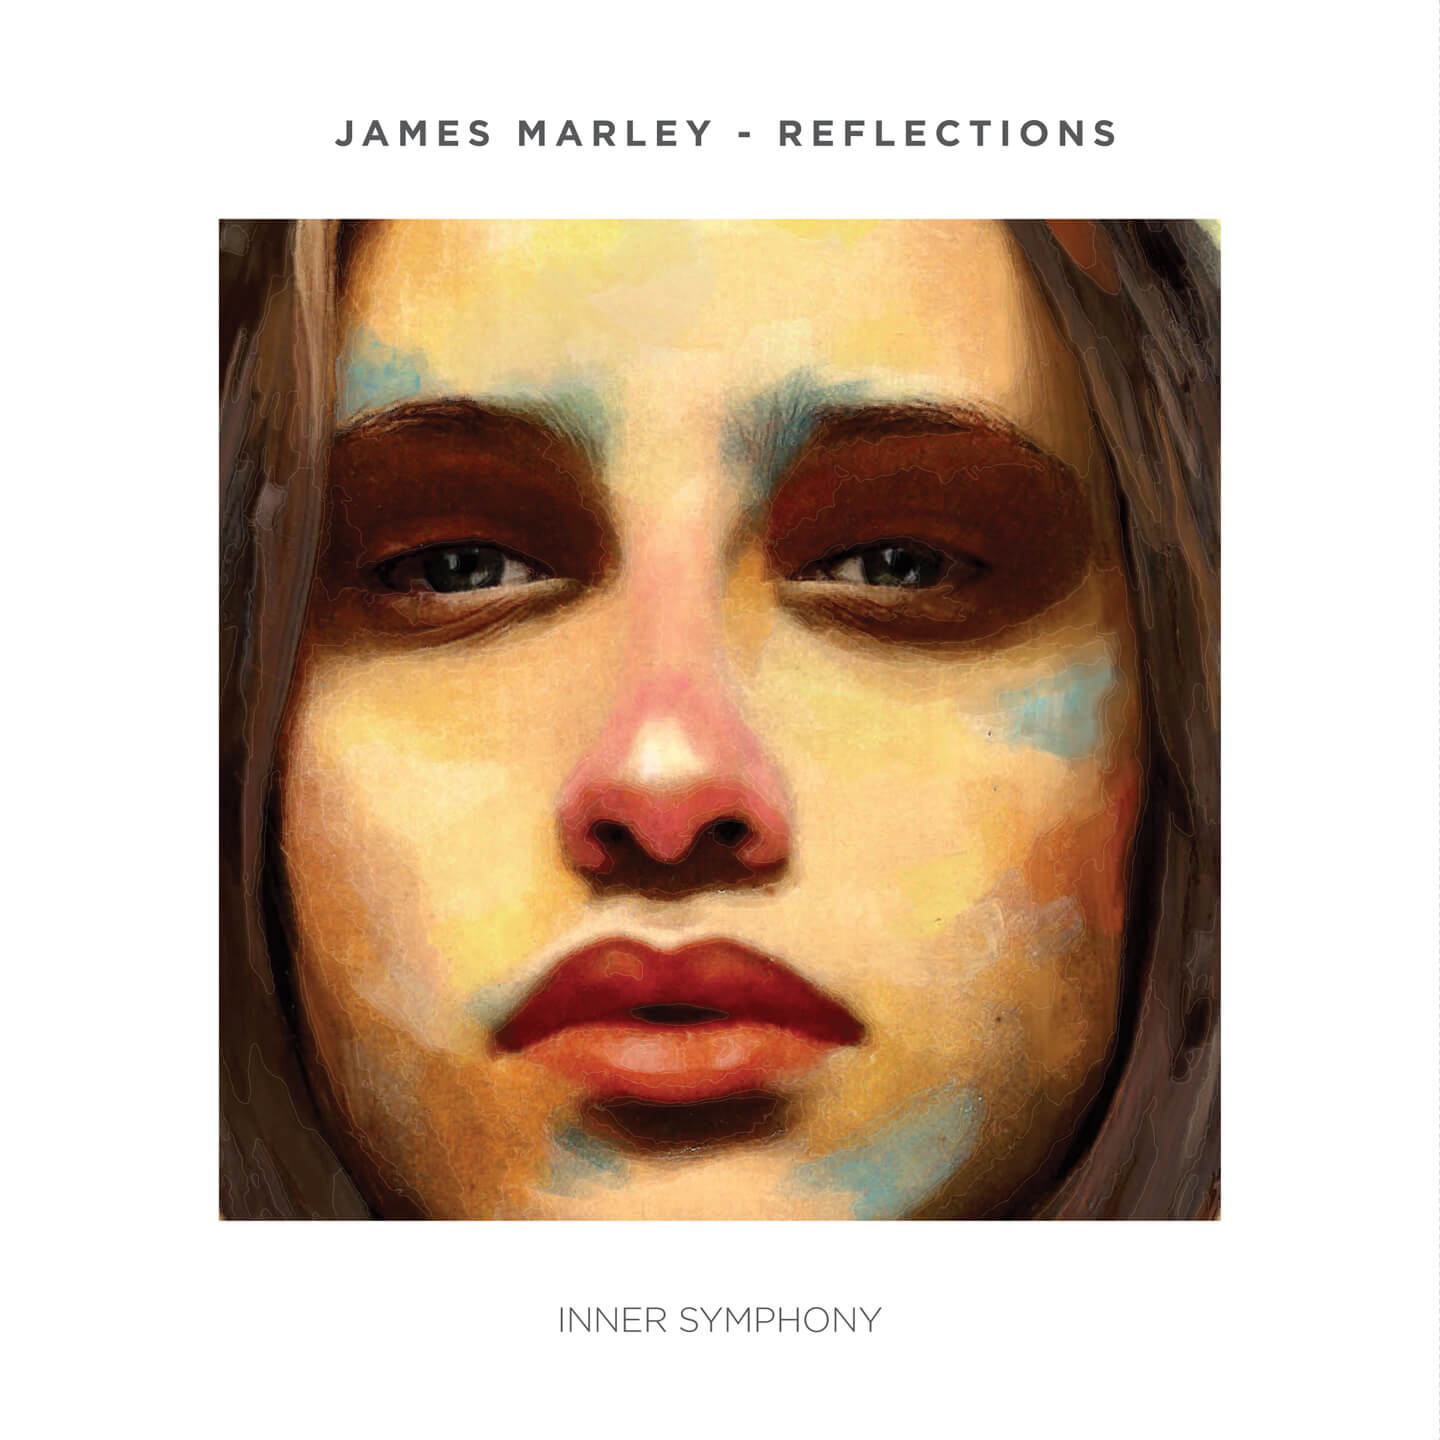 IS012-James-Marley-Reflections-Inner-Symphony